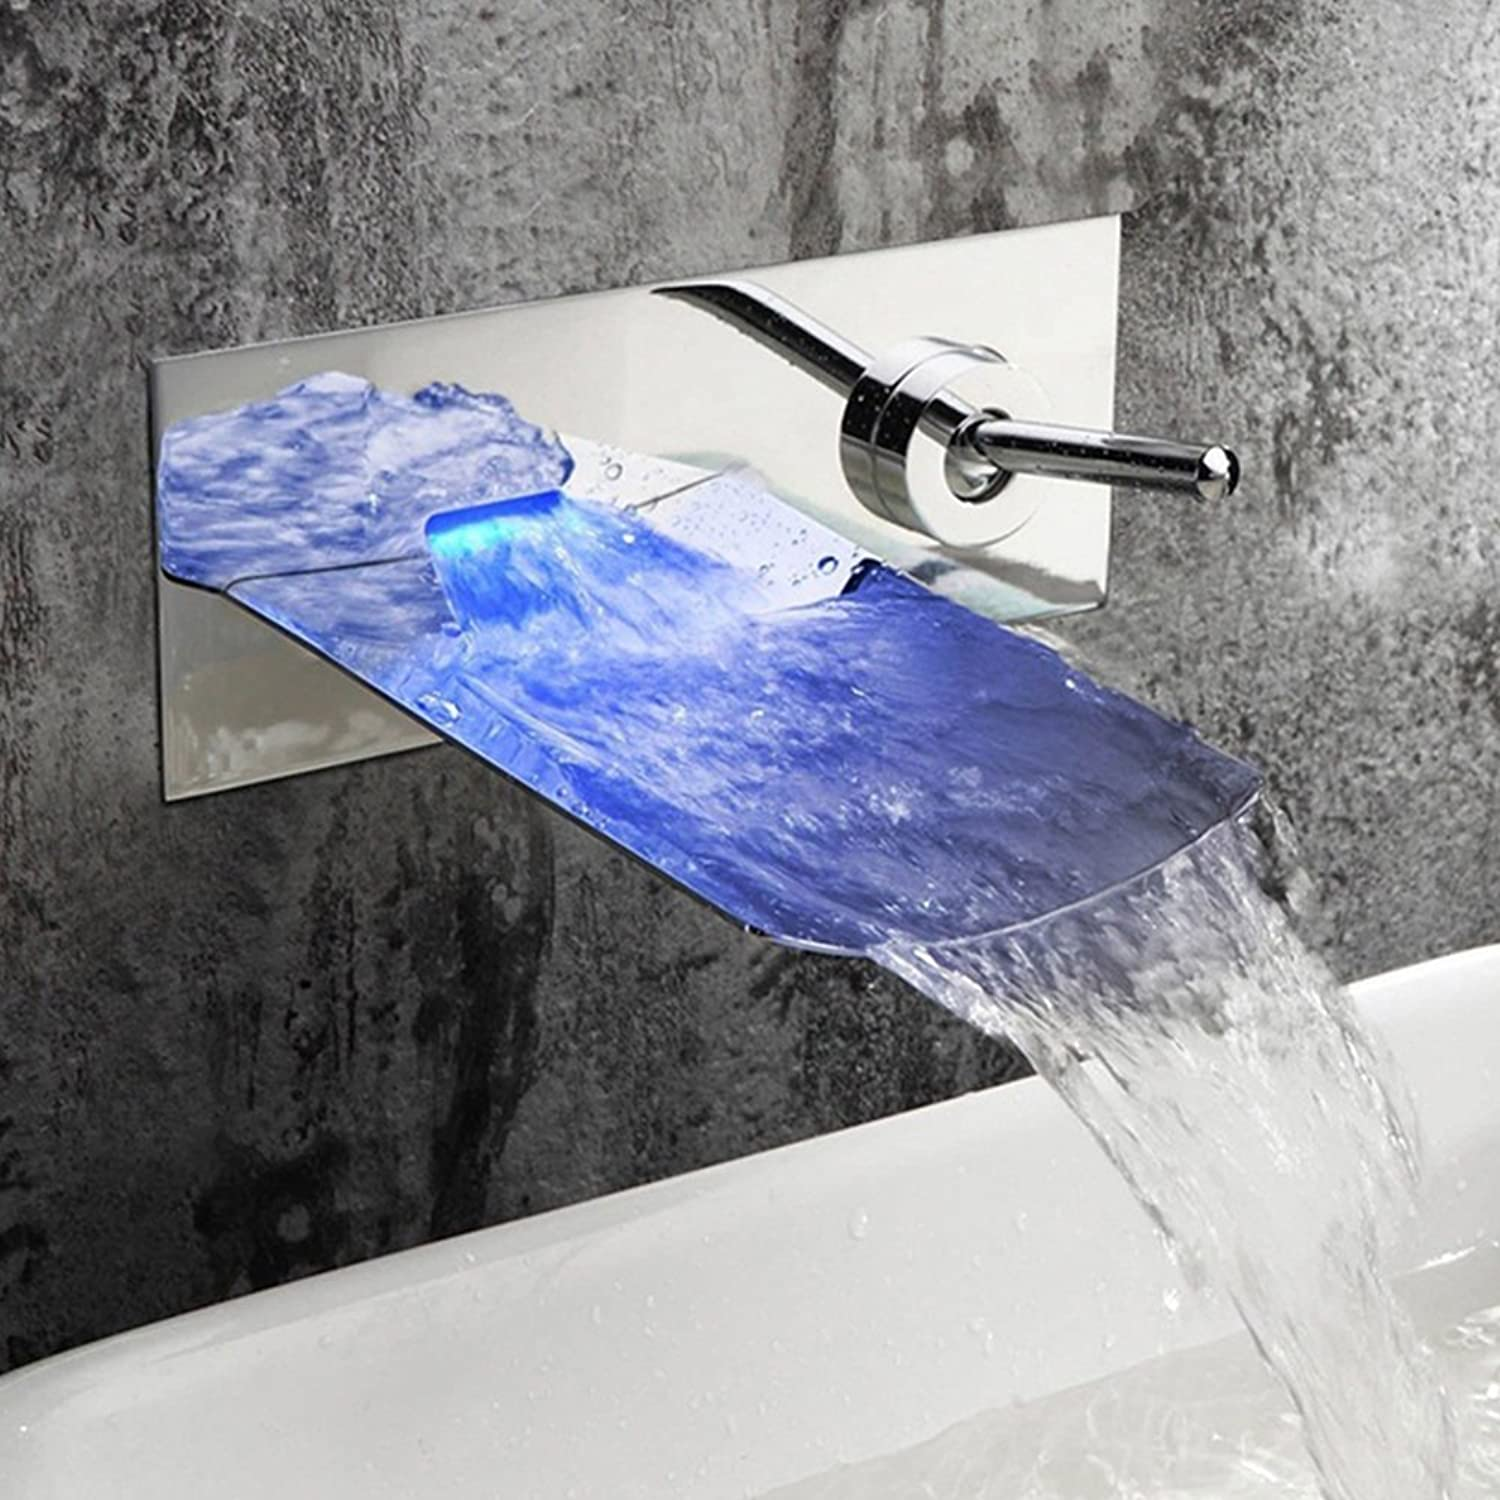 Contemporary Wall Mount LED Waterfall Bathroom Sink Tap Basin Tap Brass Chrome Bathroom Taps Bath Taps with Single Handle Ceramic Valve Single Handle Two Holes